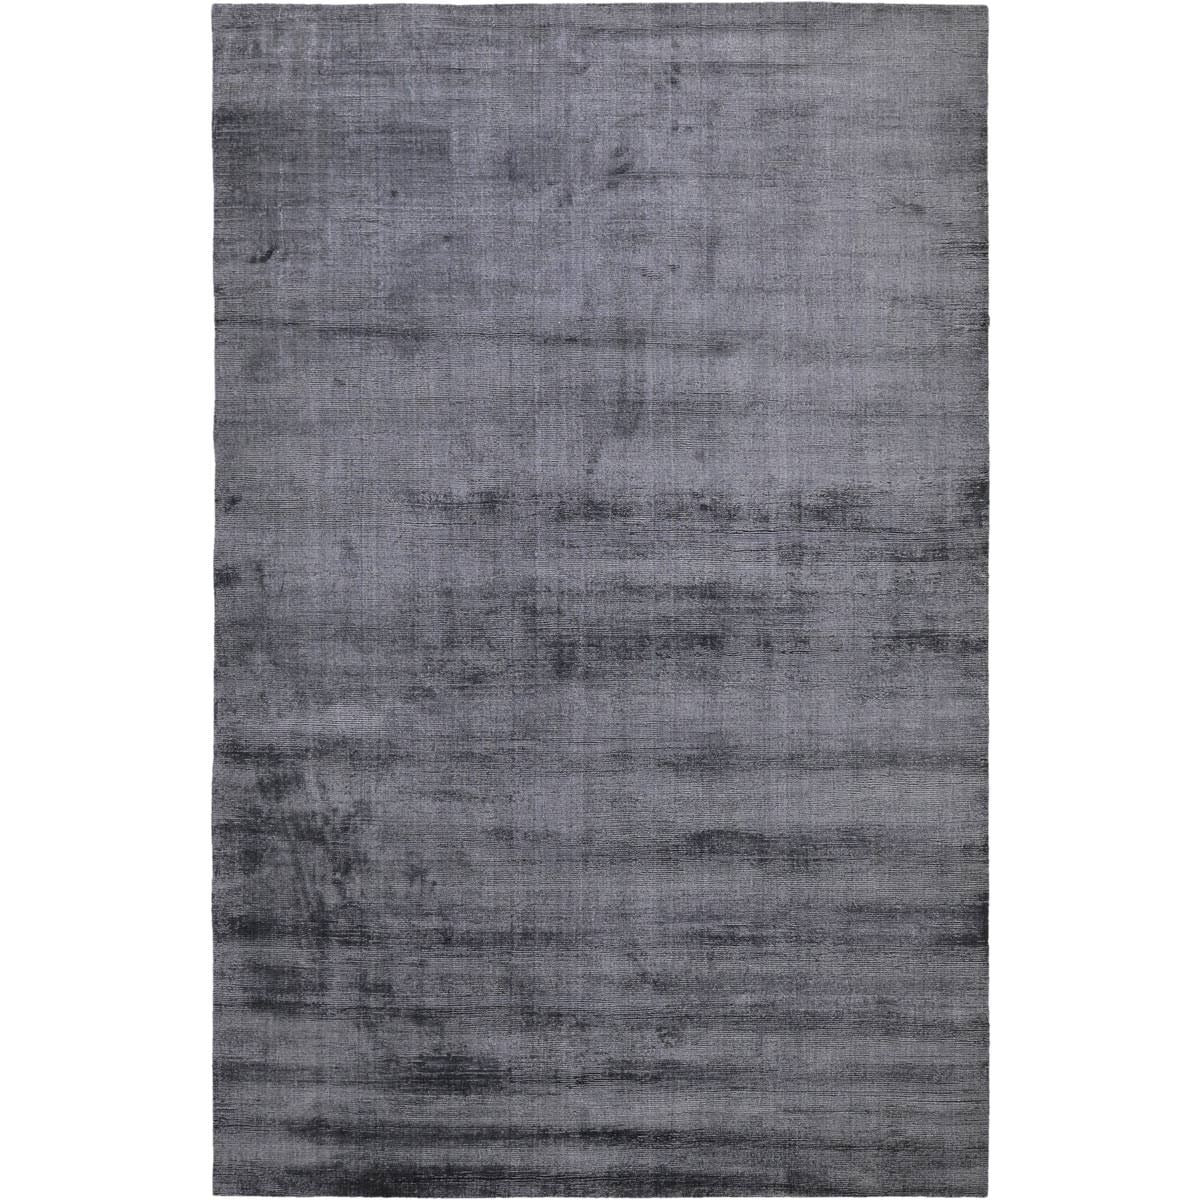 Tuscany Rug 01 Dark Grey 1